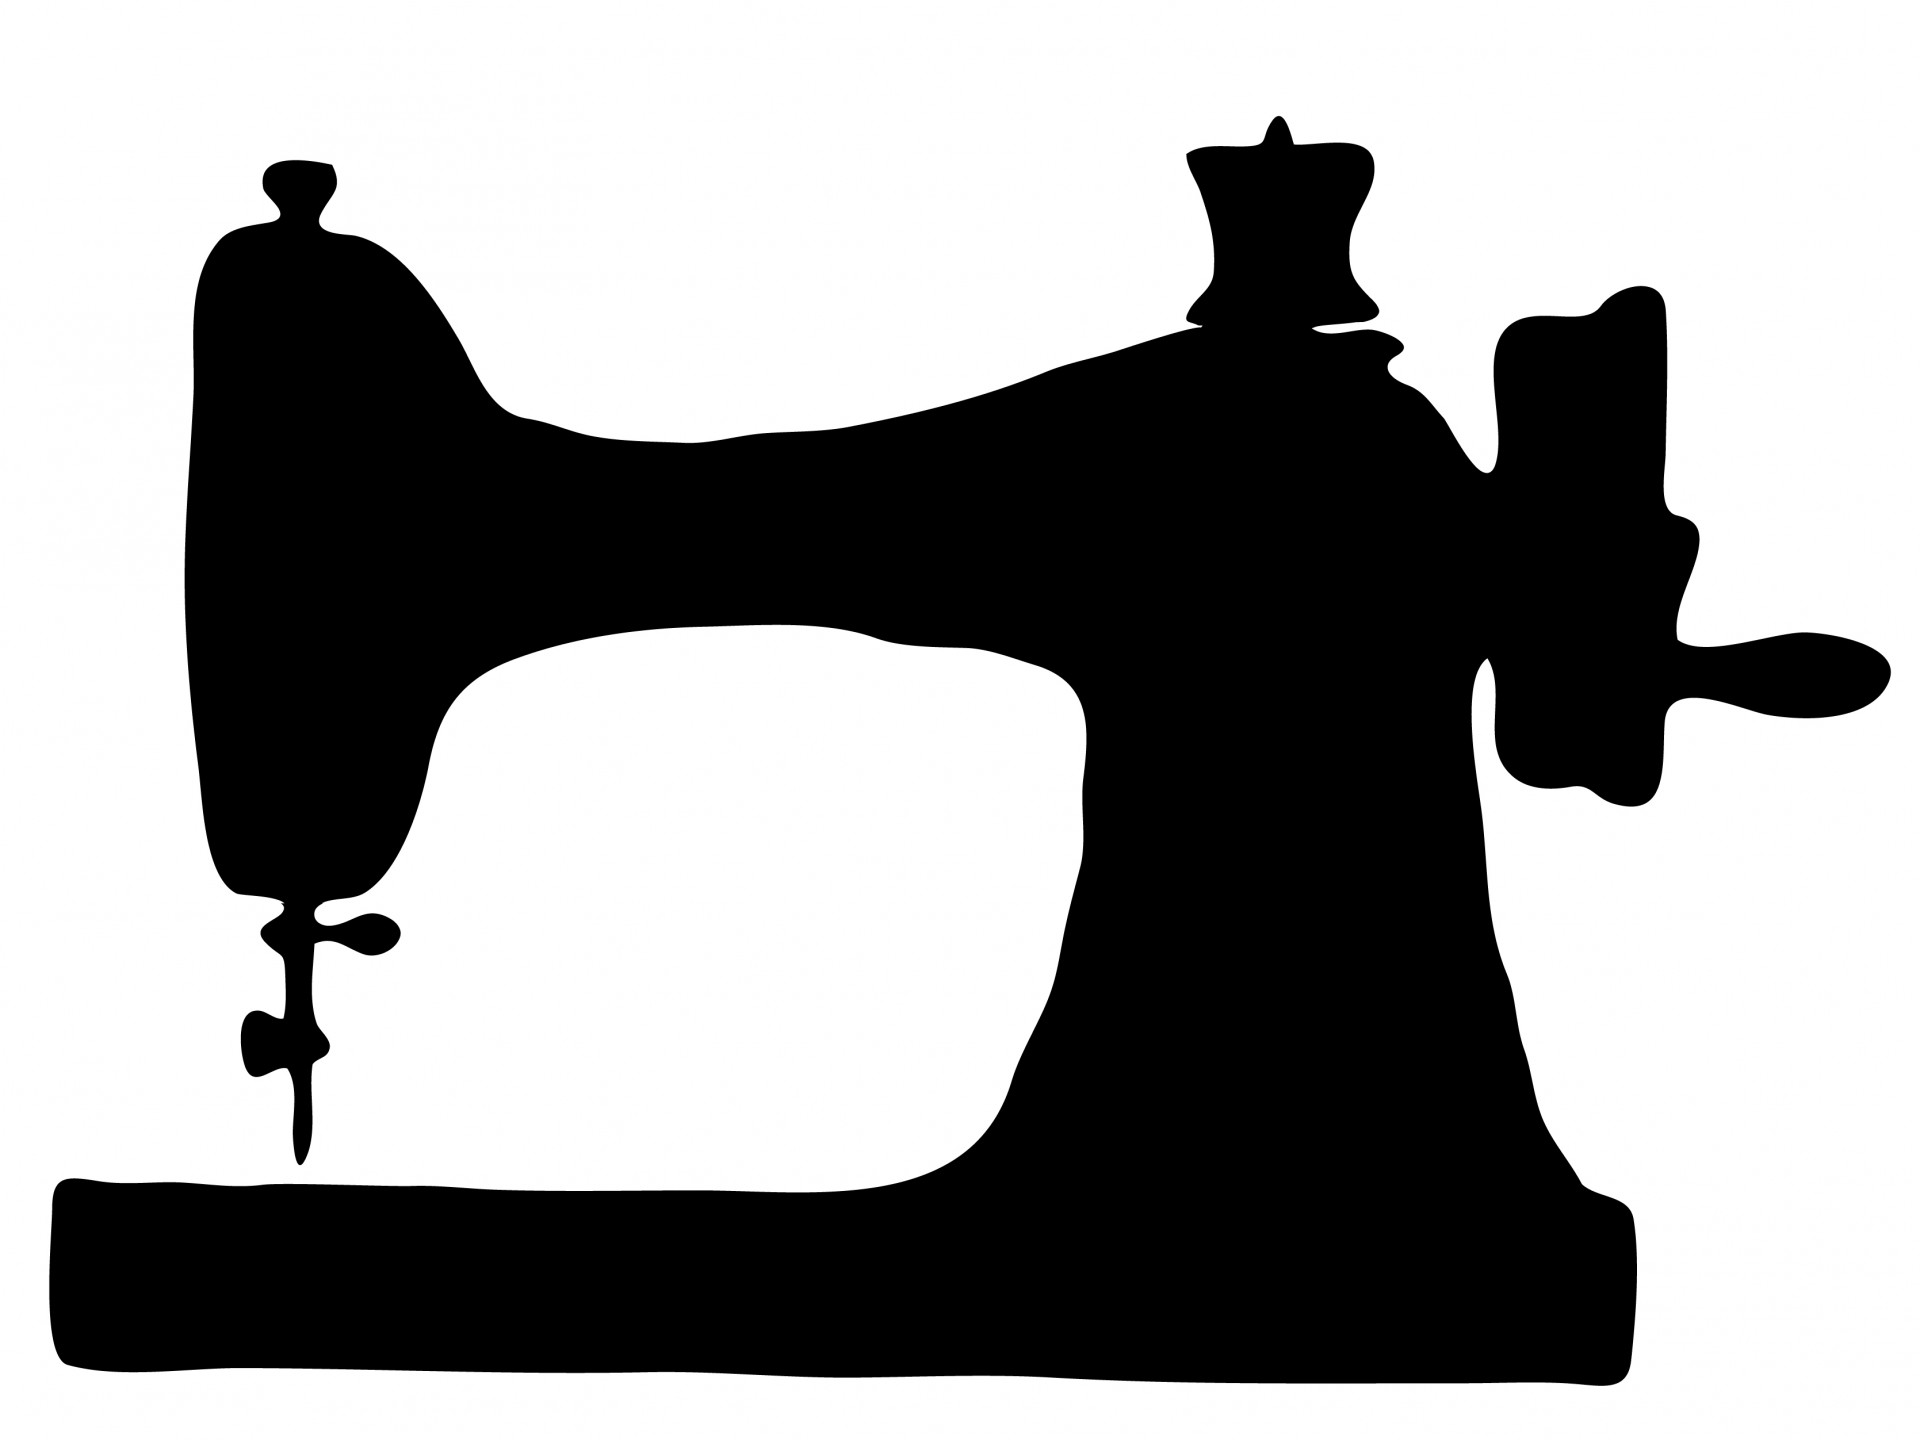 Sewing Machine clipart #19, Download drawings